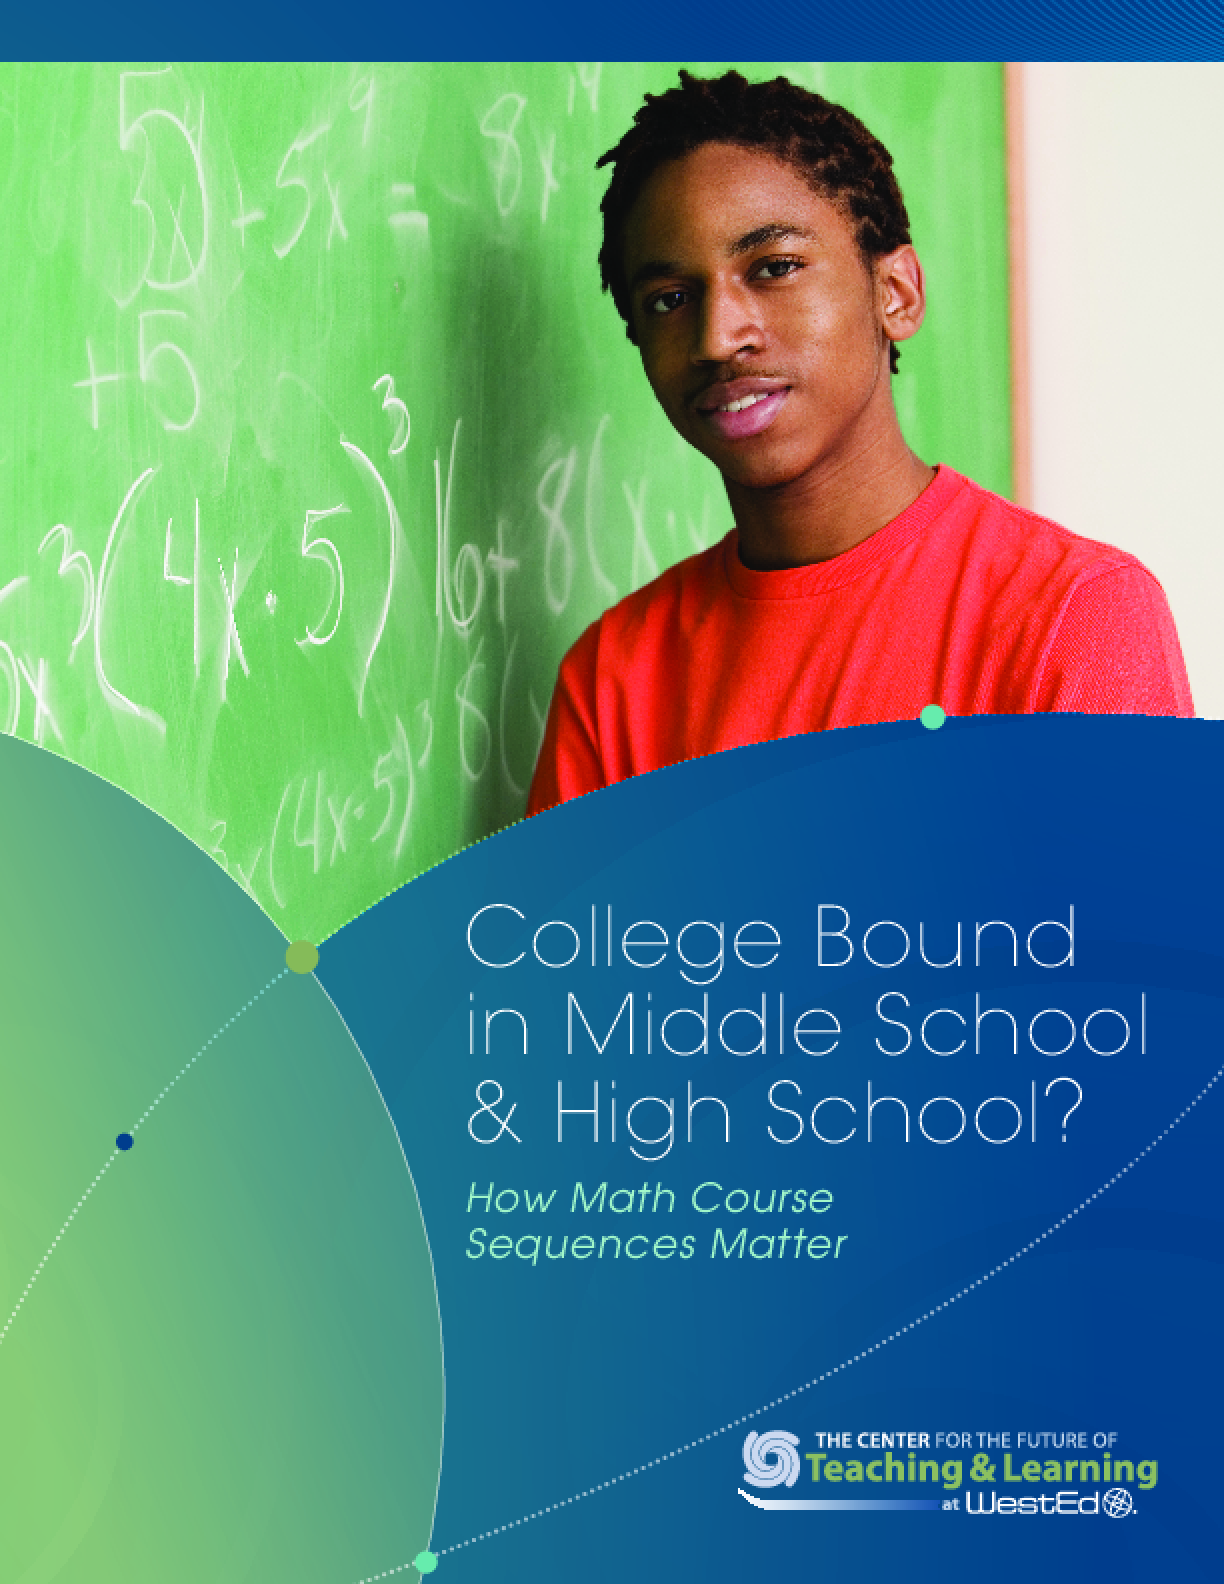 College Bound in Middle School and High School: How Math Course Sequences Matter